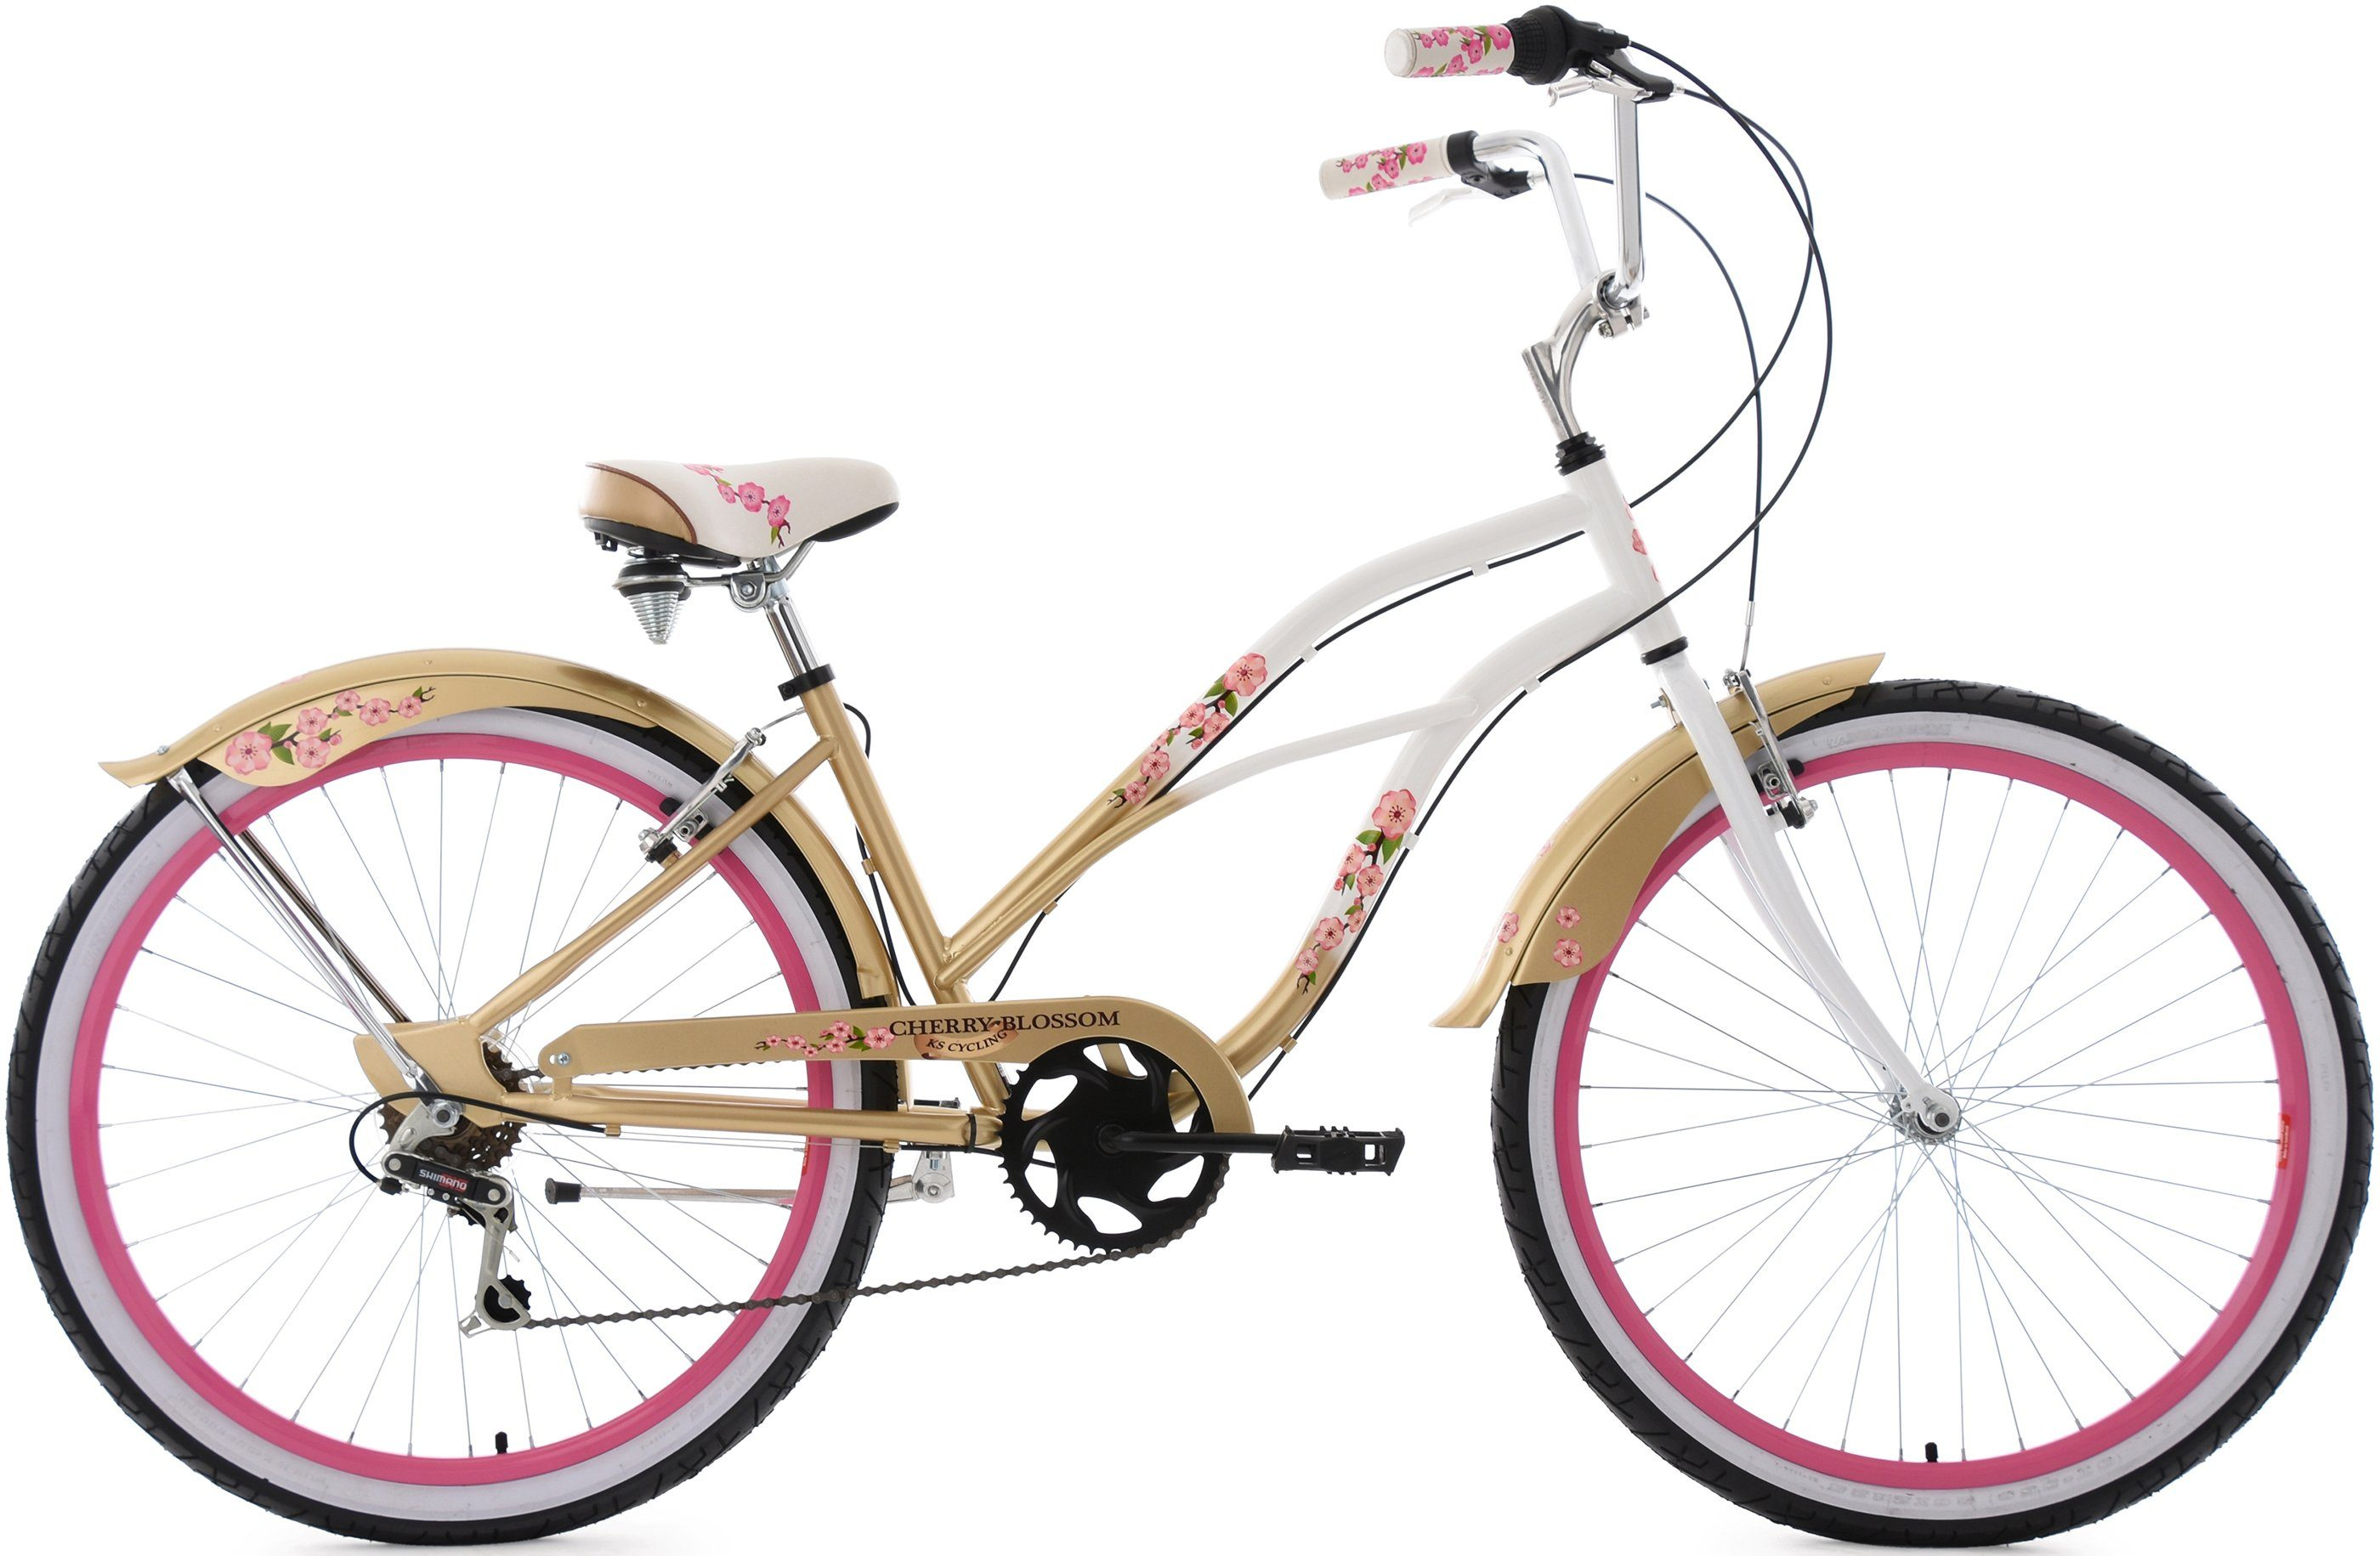 KS Cycling Beachcruiser, 26 Zoll, 6 Gang Shimano Kettenschaltung, Damen, »Cherry Blossom«